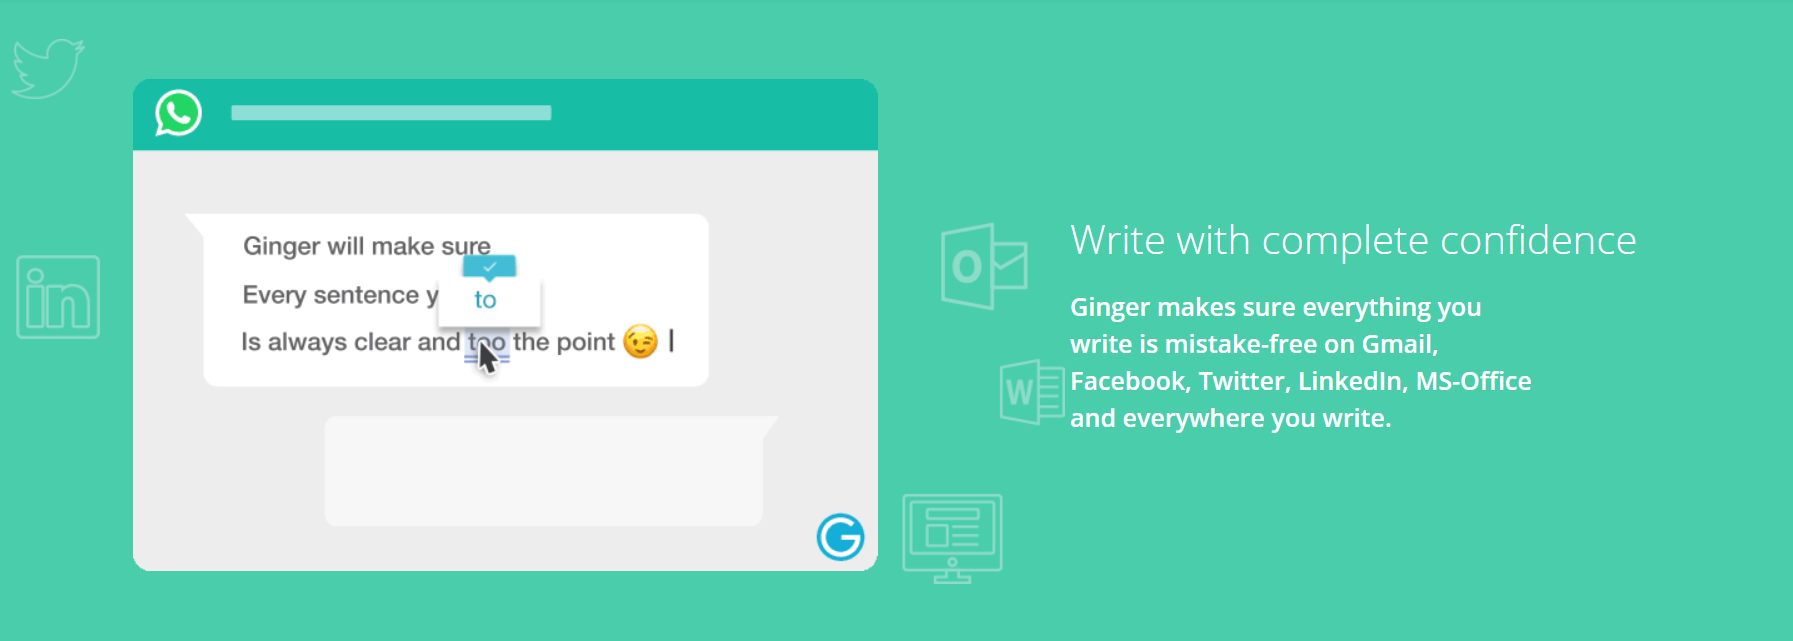 ginger writing tool